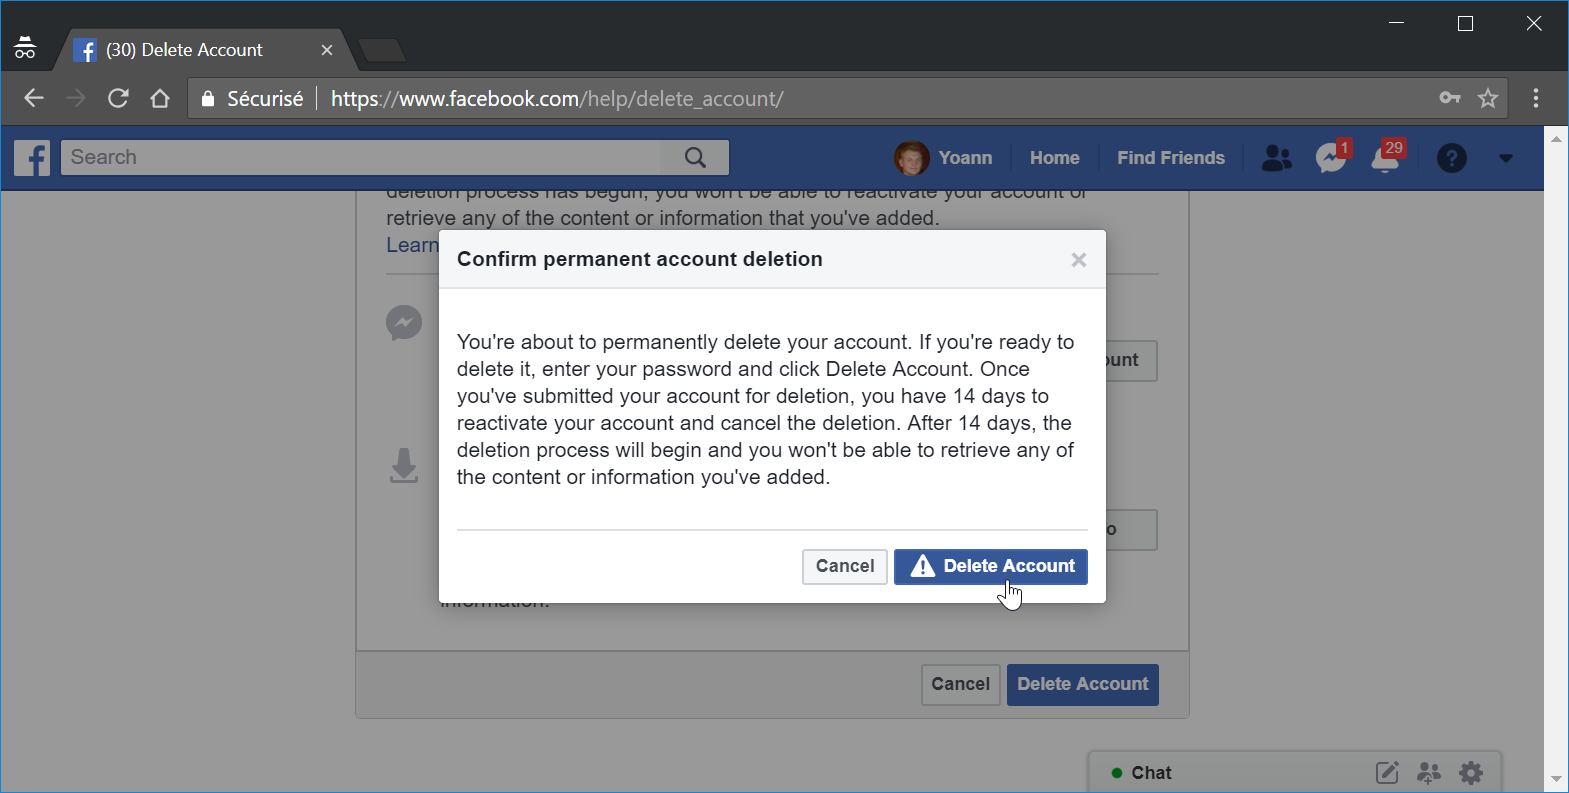 How do I delete my Facebook account : How to close Facebook account permanently